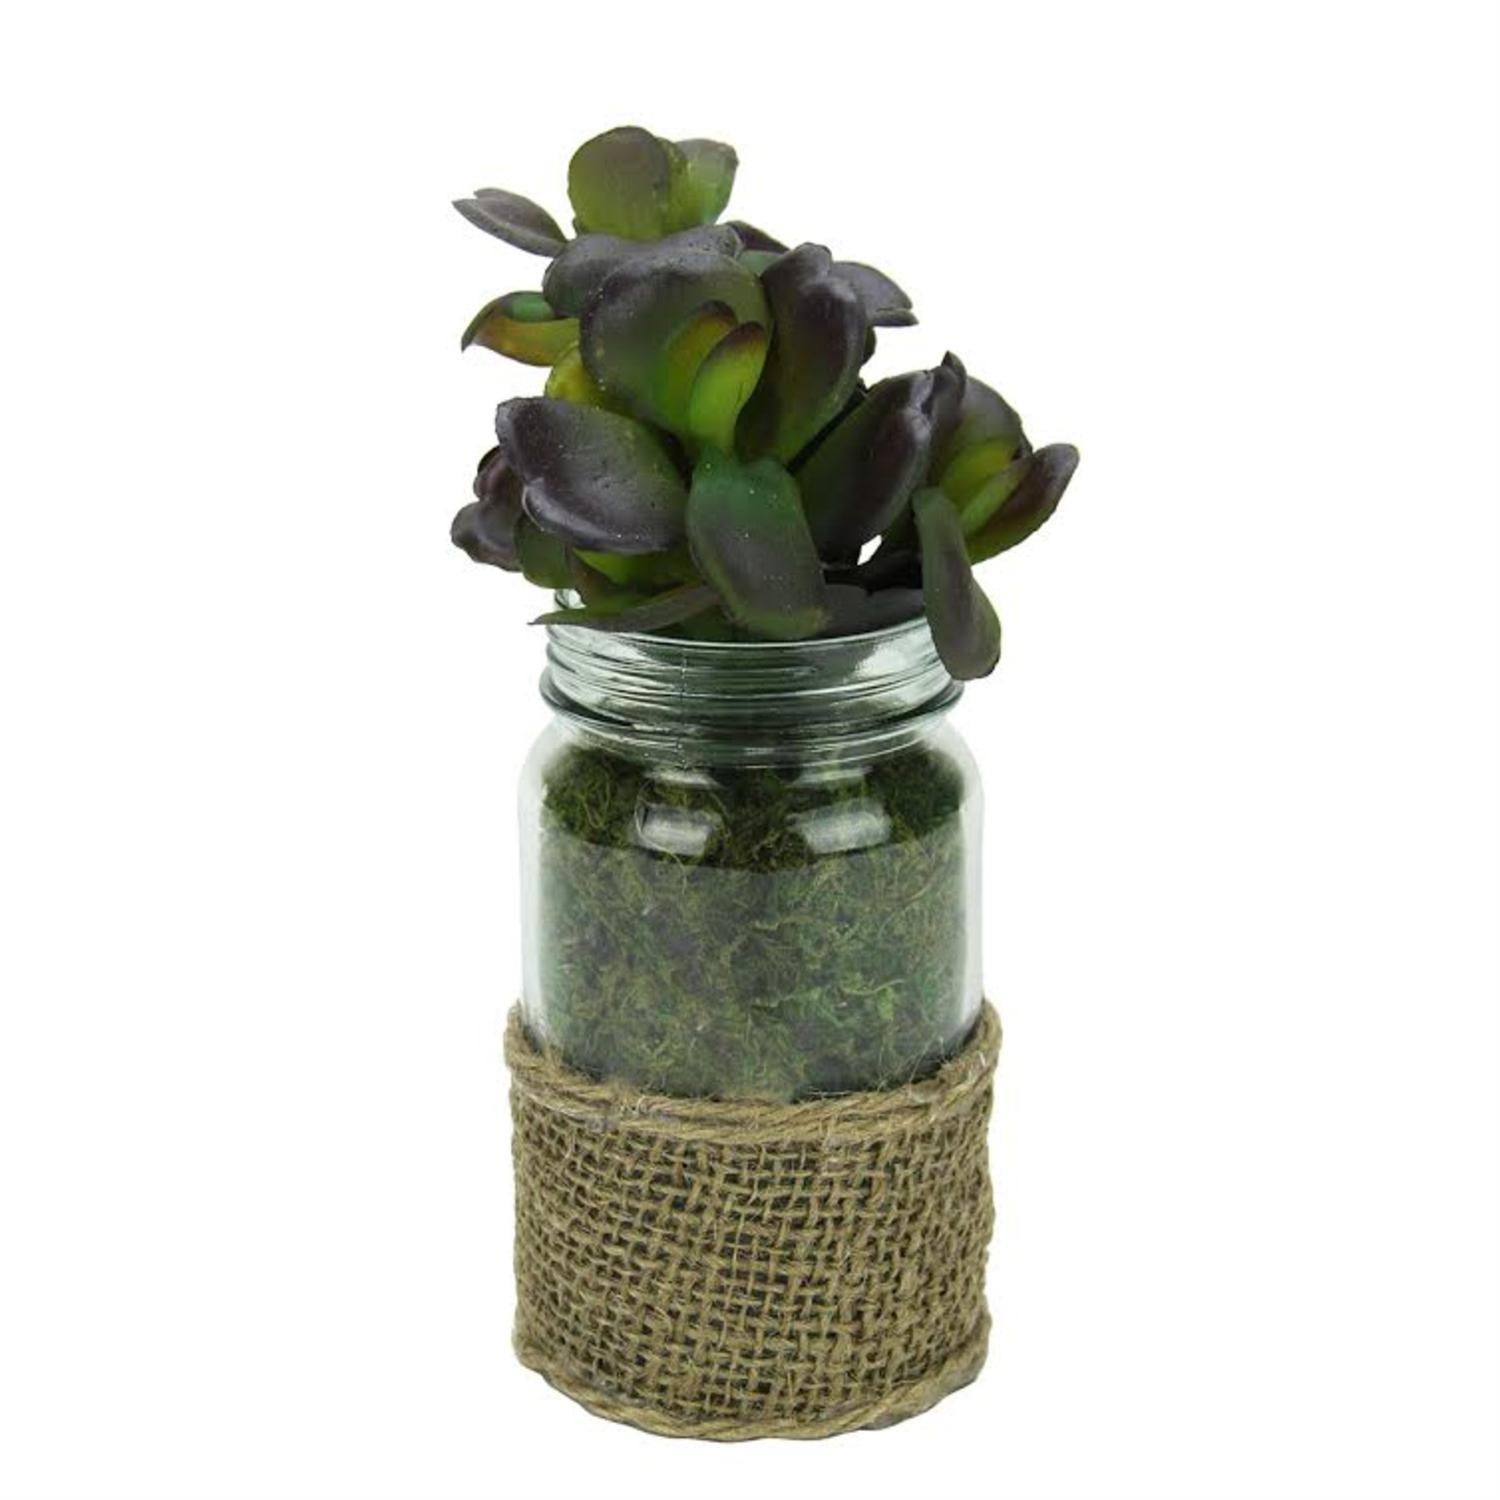 Artificial Potted Jade Succulent Plant in Glass Jar with Burlap Grip 7.5""